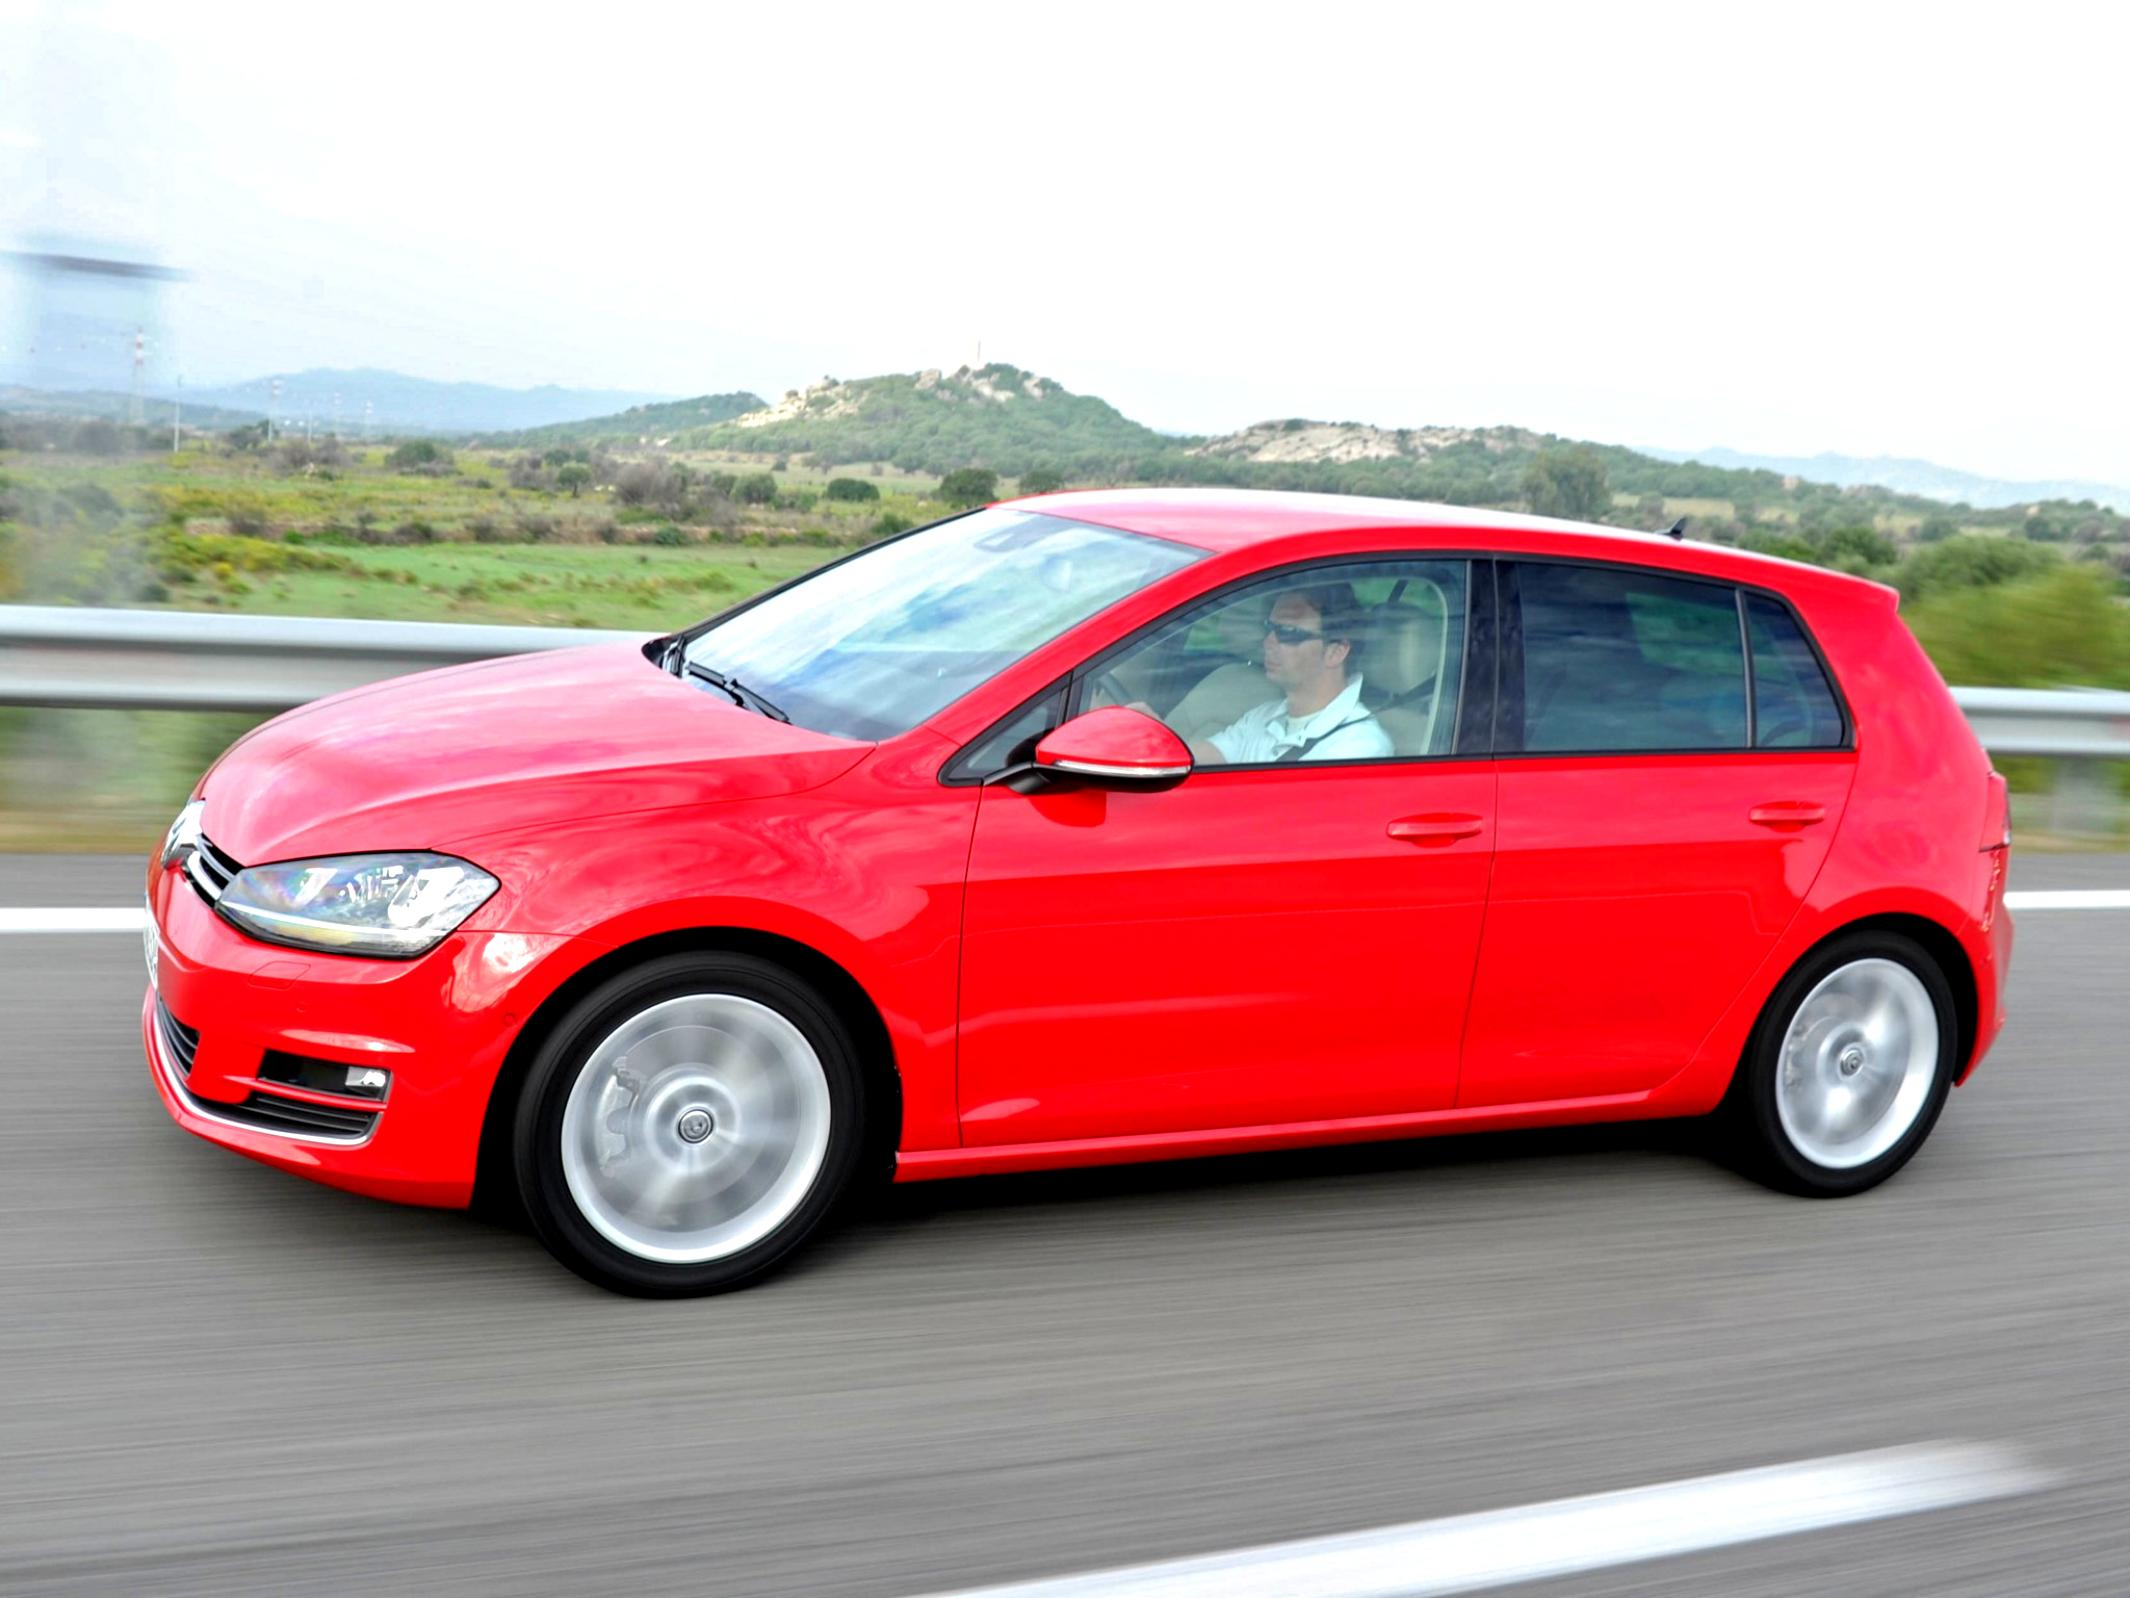 Volkswagen Golf VII 5 Doors 2012 #44